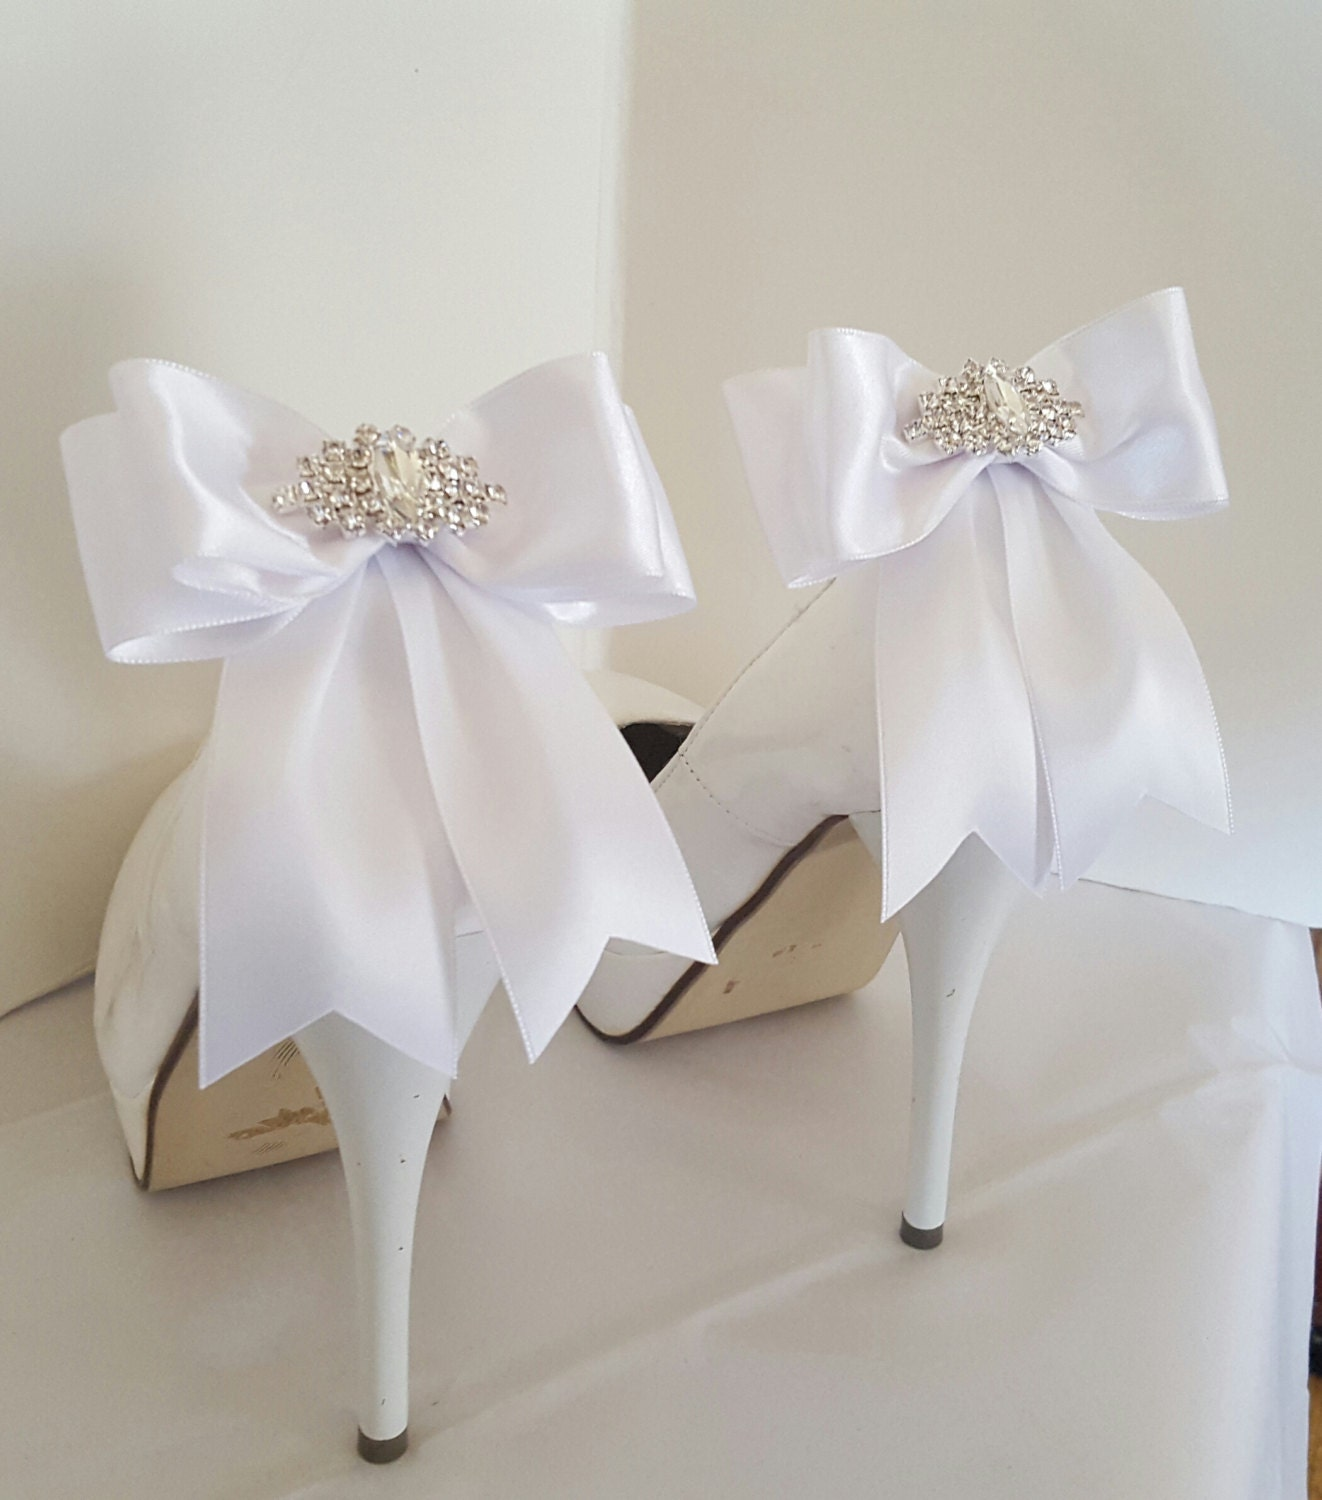 Custom Colors Wedding Shoes Accessory Wedding Shoes Wedding: White Wedding Shoe ClipsBridal Shoe Clips MANY COLORS